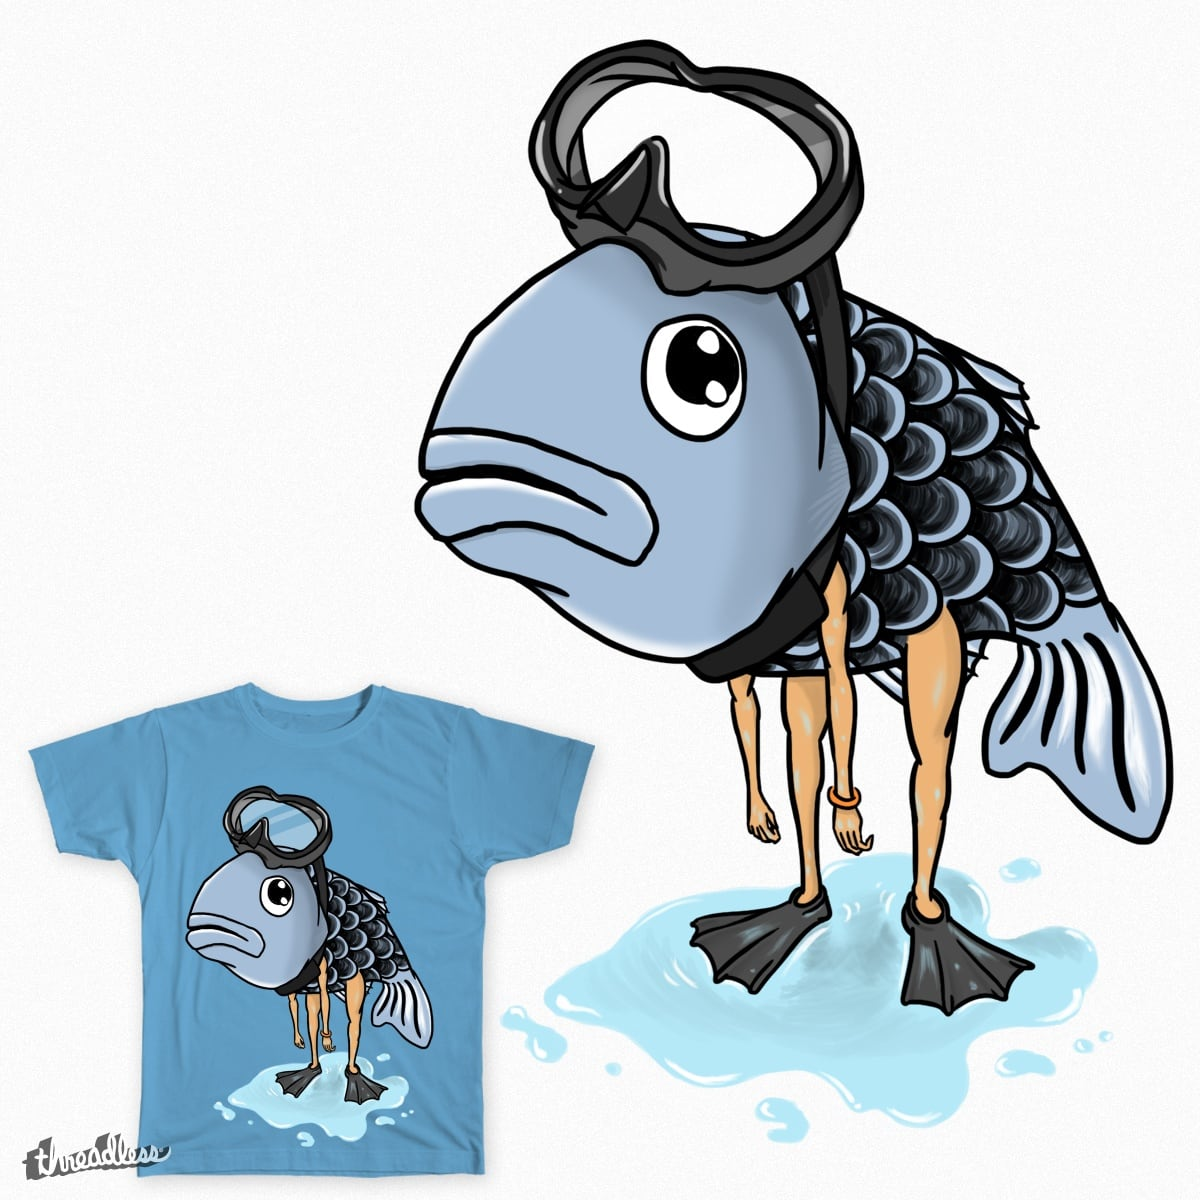 I'm the fish by cross7fu on Threadless